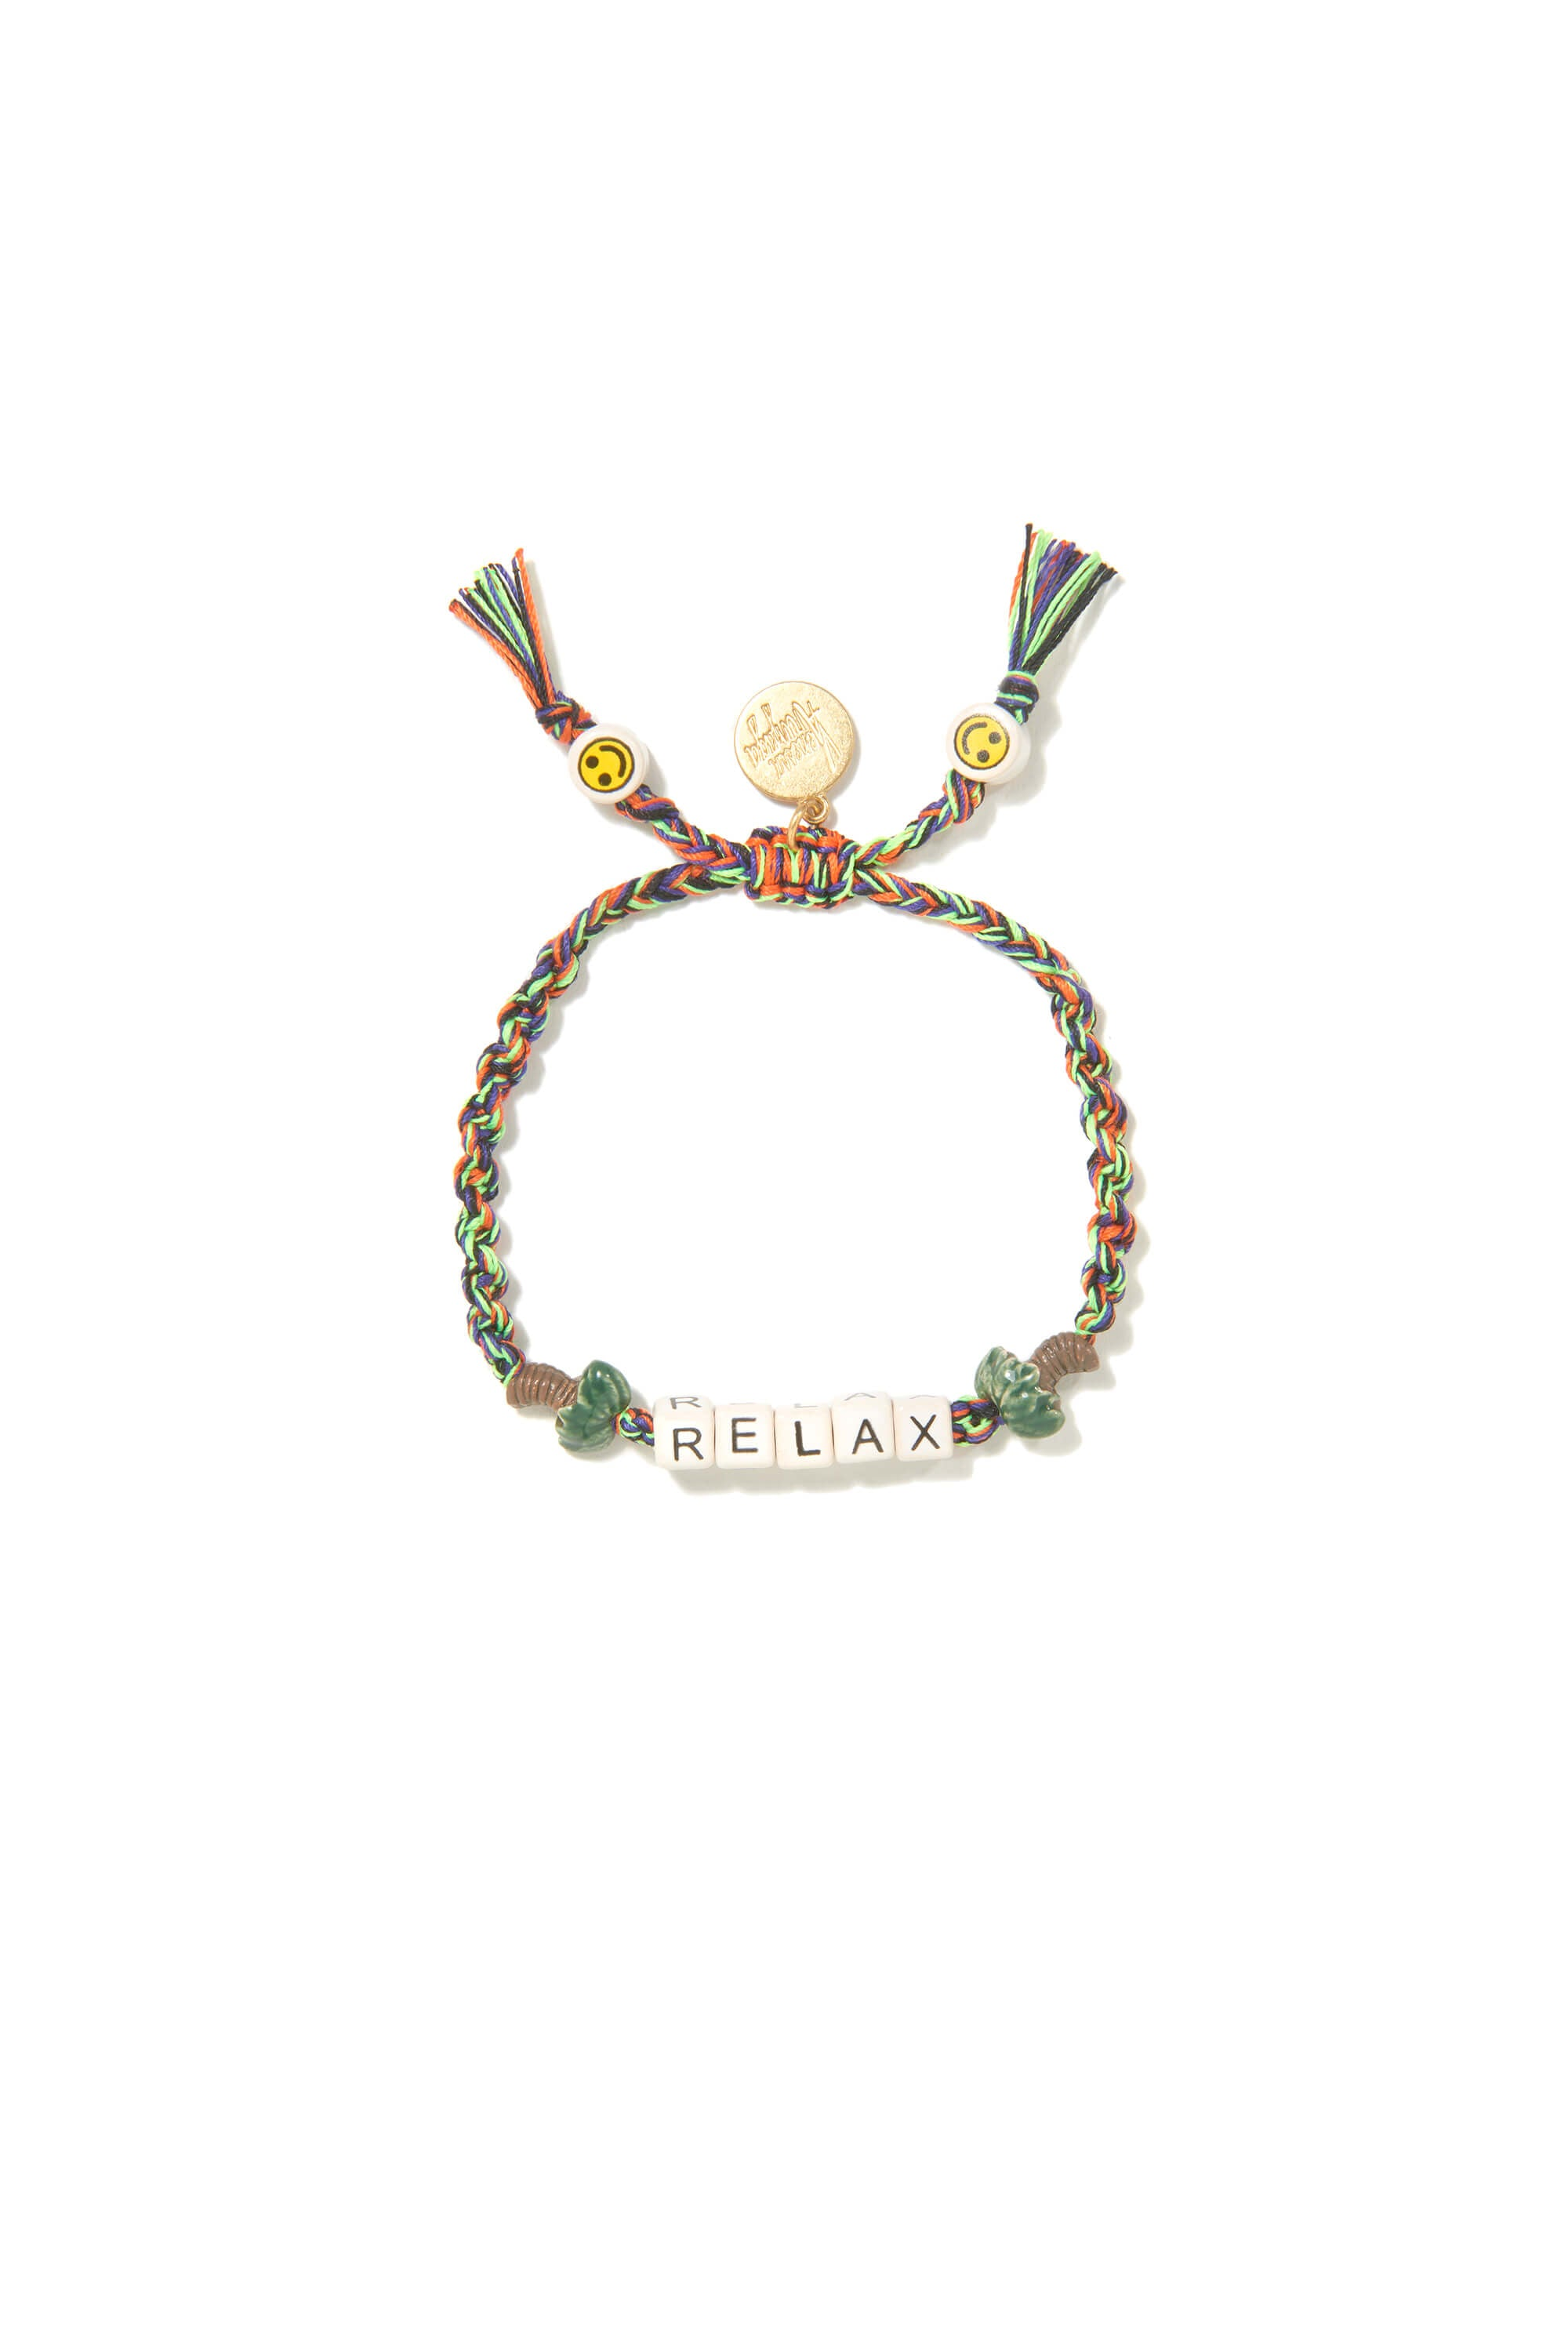 VA Relax bracelet in rainbow with gold